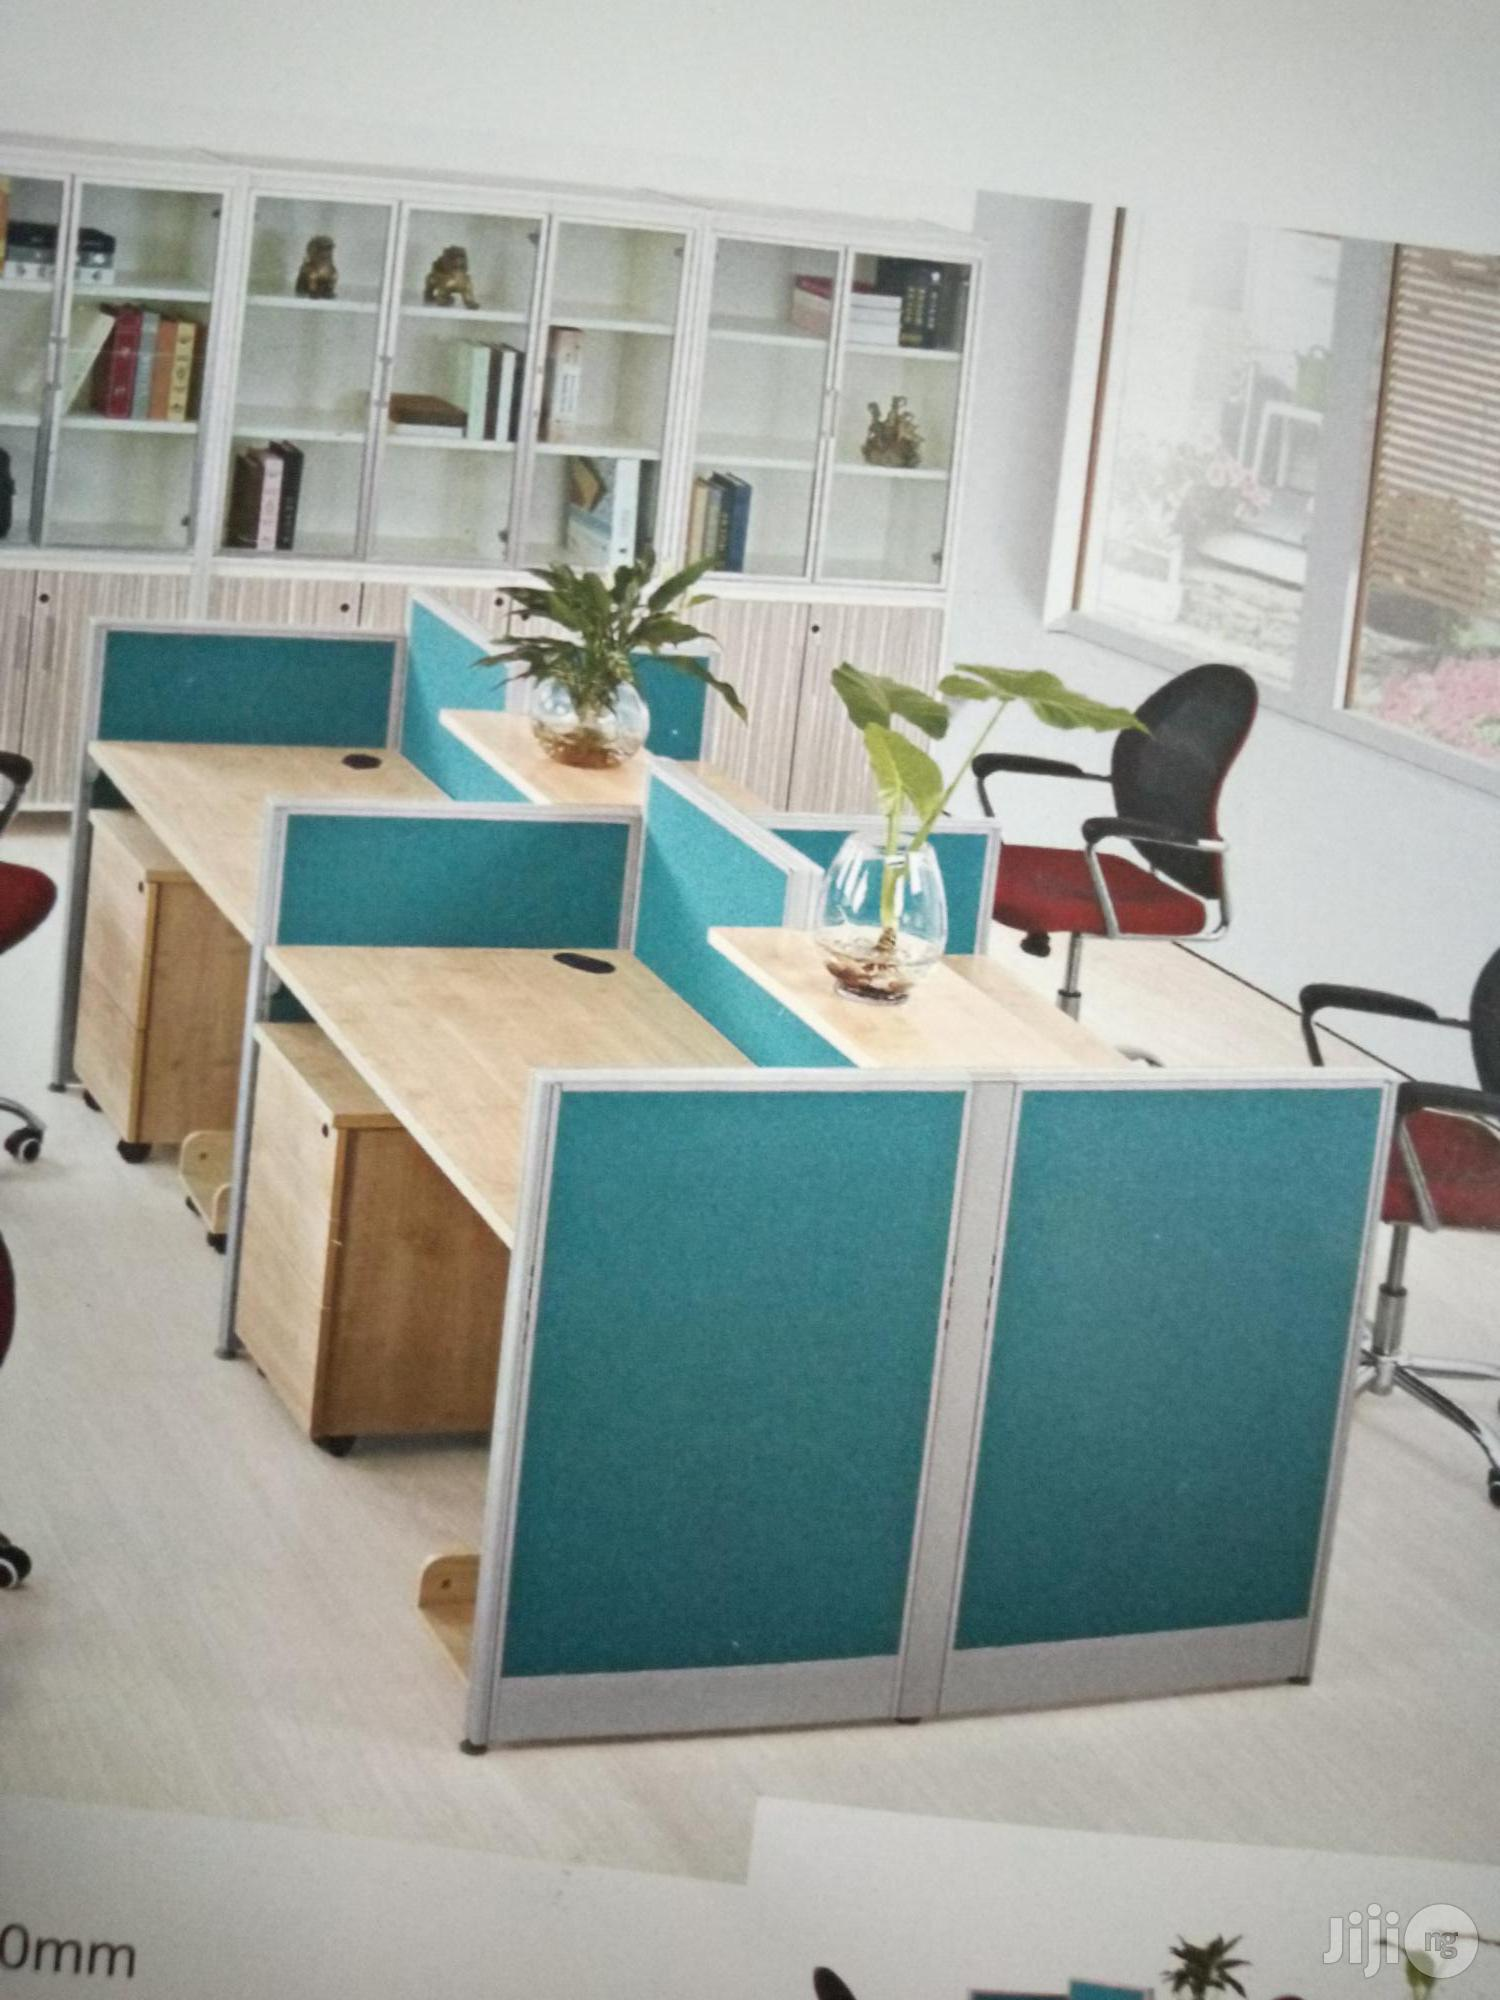 Work Stations For Offices | Furniture for sale in Mushin, Lagos State, Nigeria